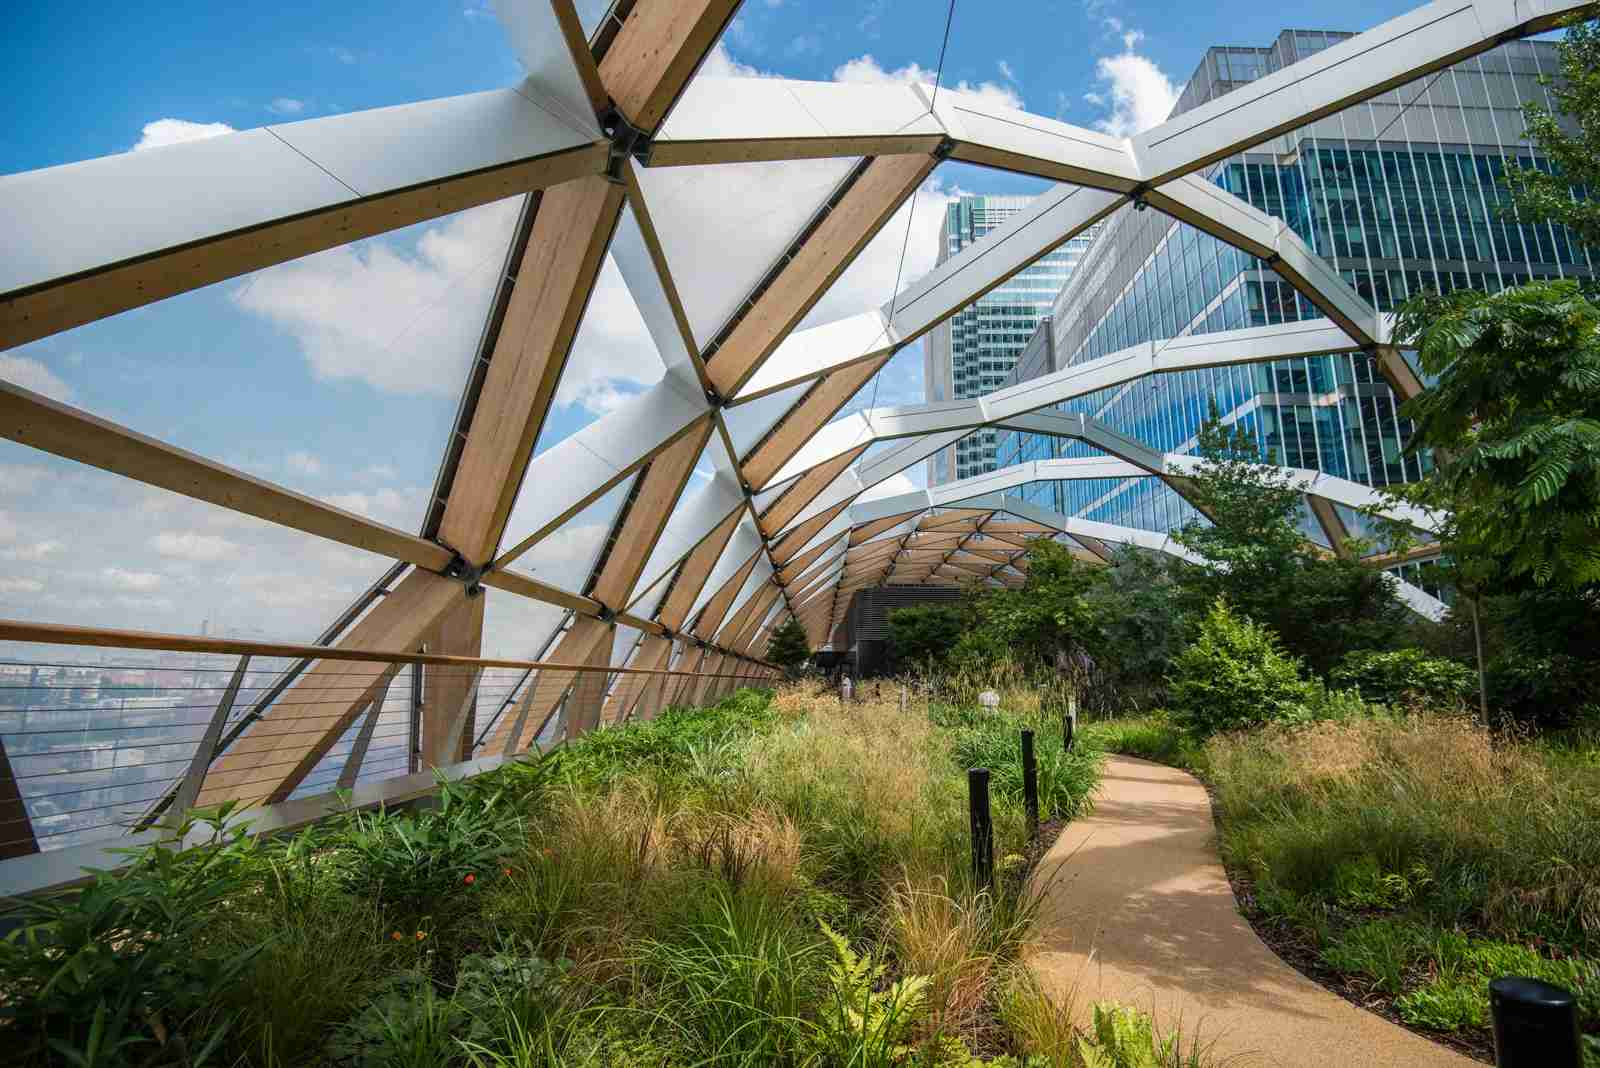 The Sky Garden. (Photo by Howard Kingsnorth/Getty Images)